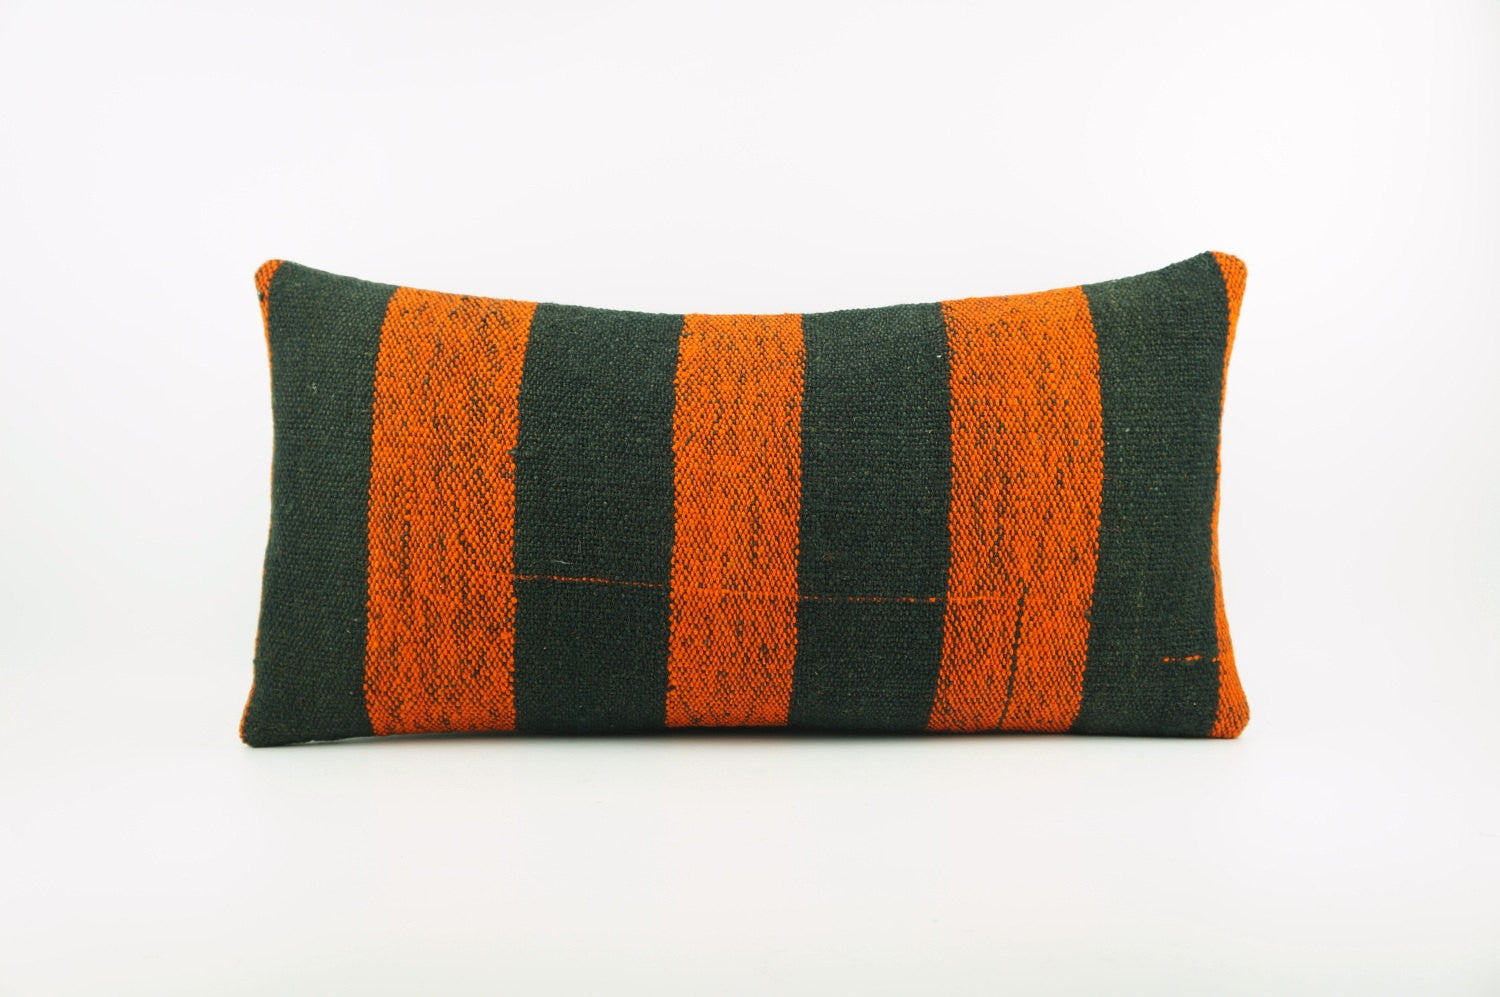 12x24 Ethnic decorative pillow cover , Bohemian pillow case, Modern home decor Striped Orange Black handwoven pillow ,1864 - kilimpillowstore  - 1